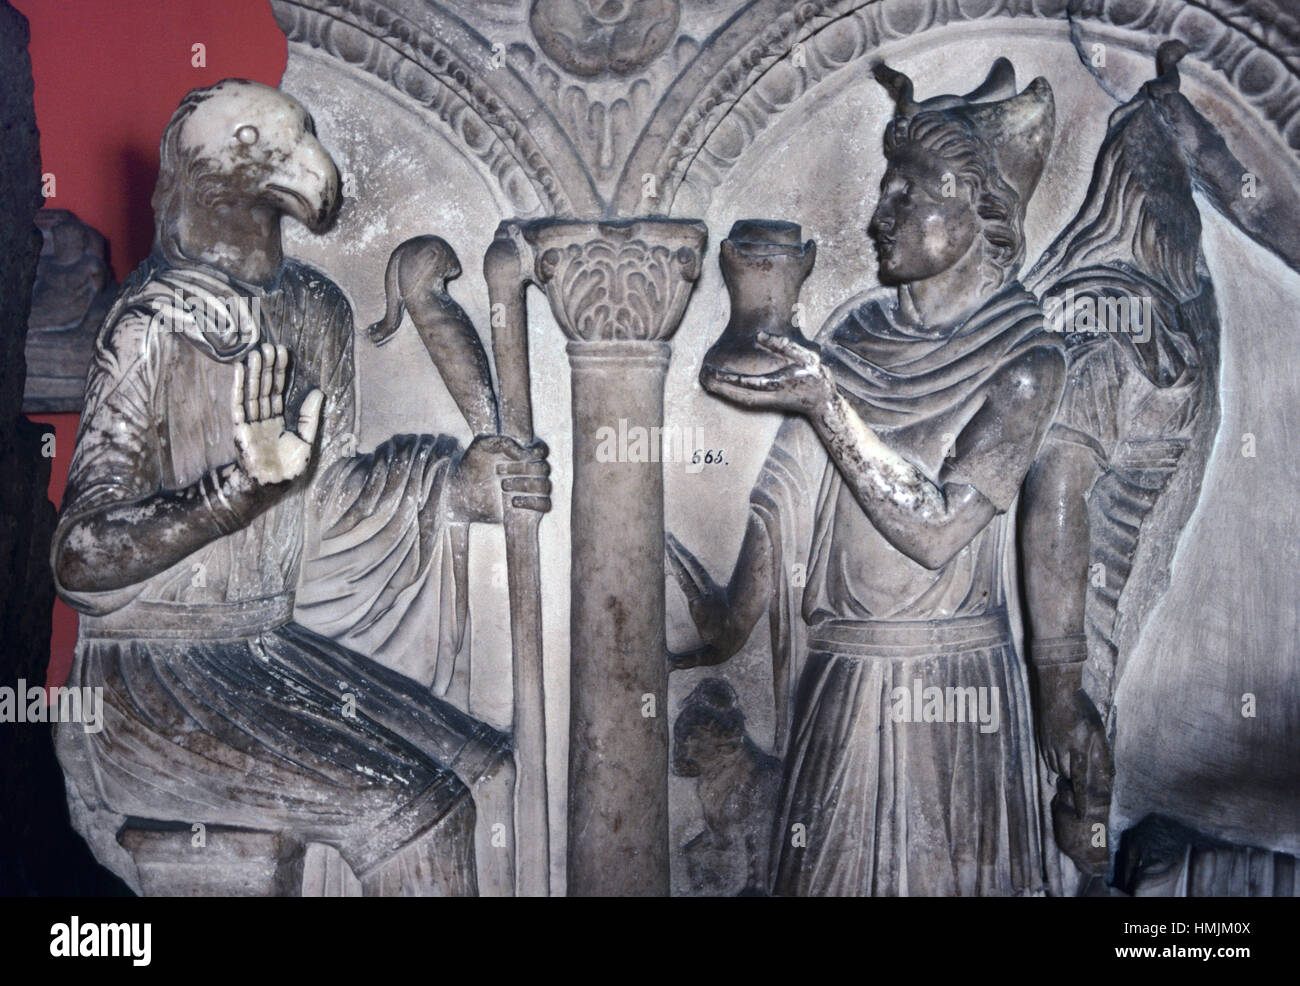 Roman Sarcophagus (c4th BC) Showing Roman with an Eagle's Head from the Ancient Roman Town of Hierapytna, now Ierapetra, Stock Photo